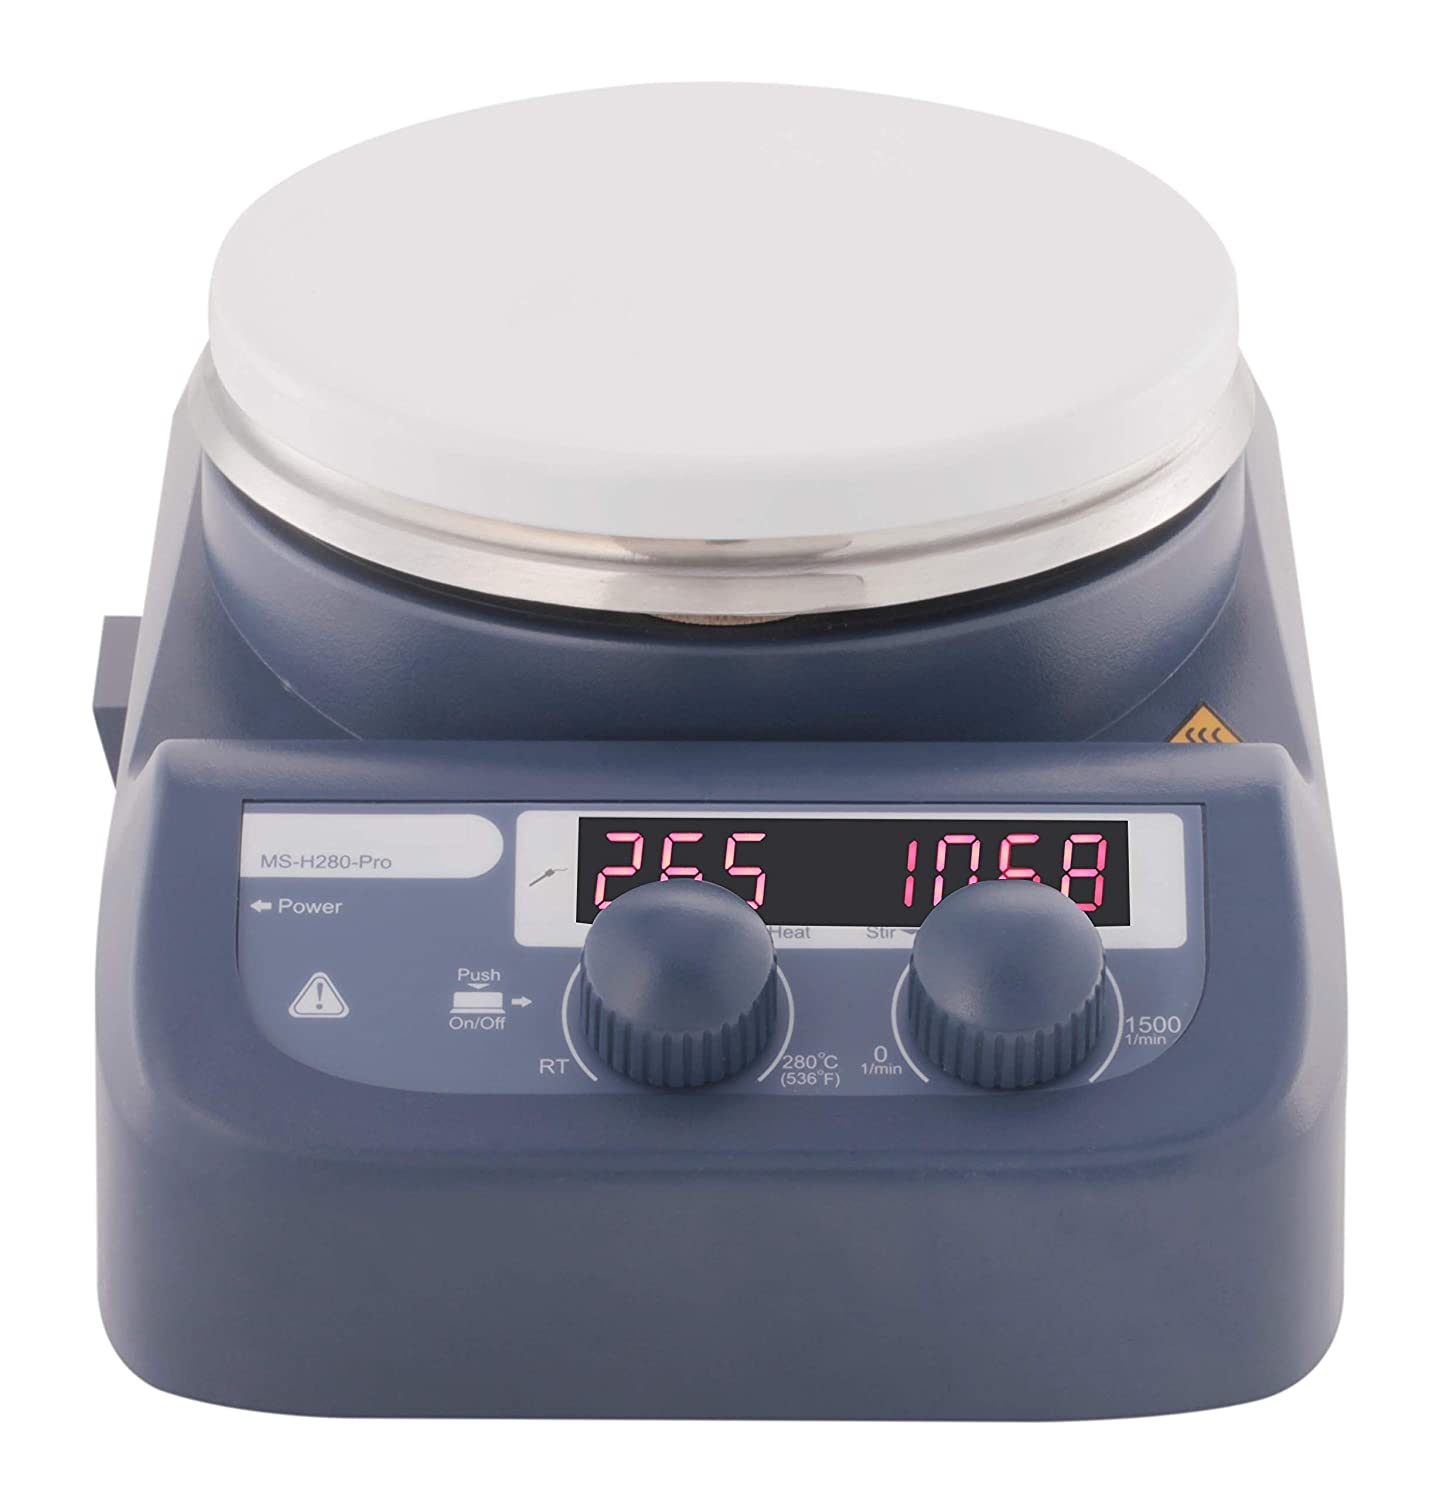 Camlab MS-H280-Pro Magnetic Hotplate Stirrer with LED Display 1200464